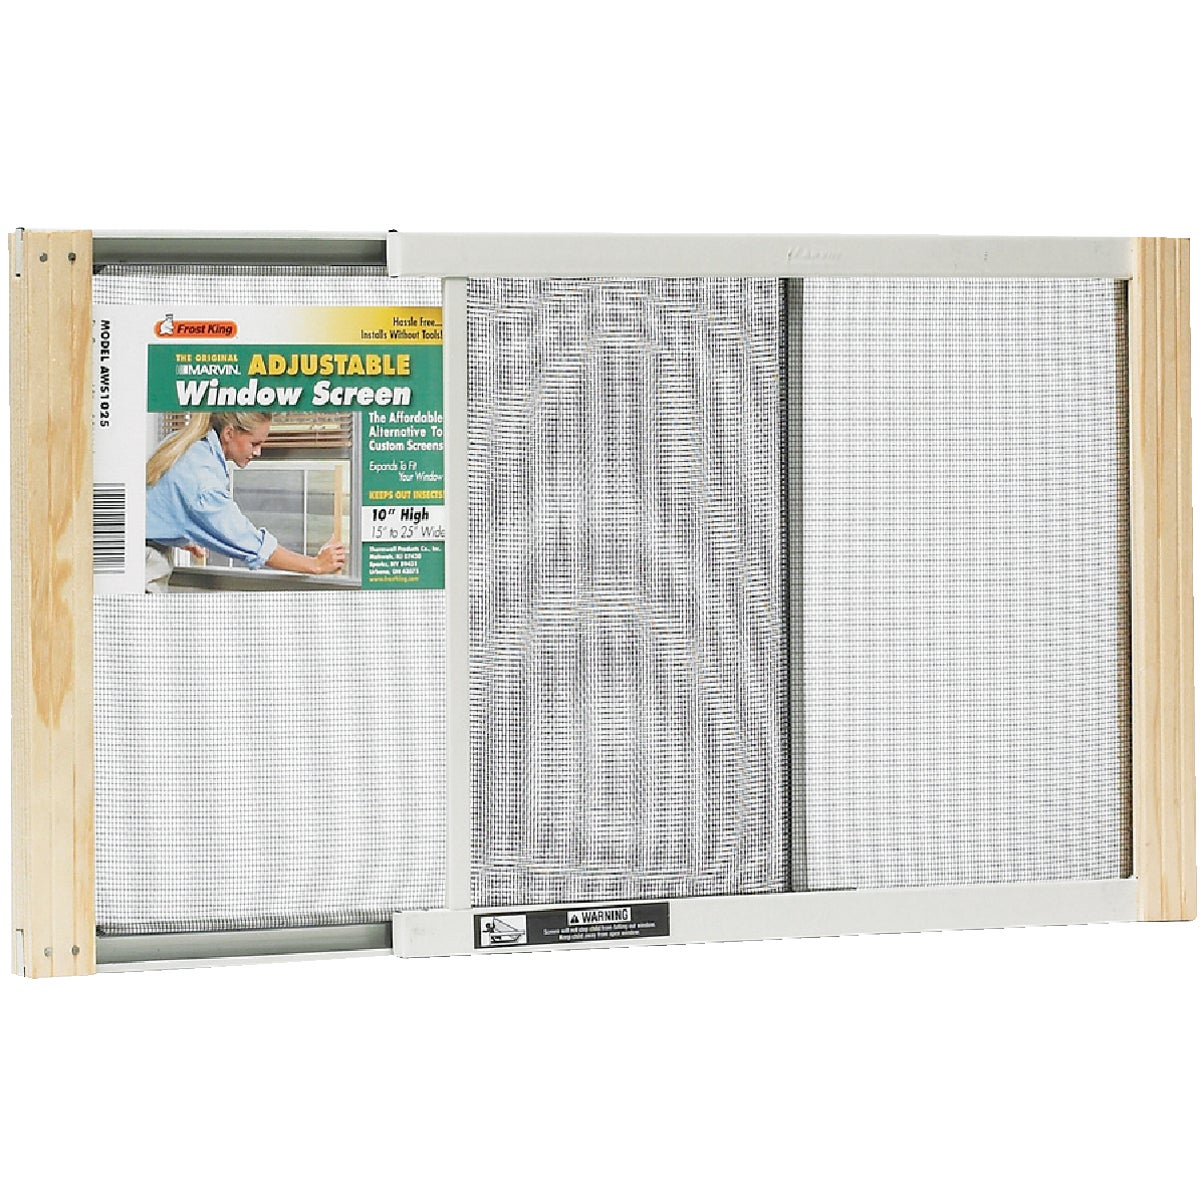 ADJUSTABLE WINDOW SCREEN - AWS1025 by Thermwell Prods Co